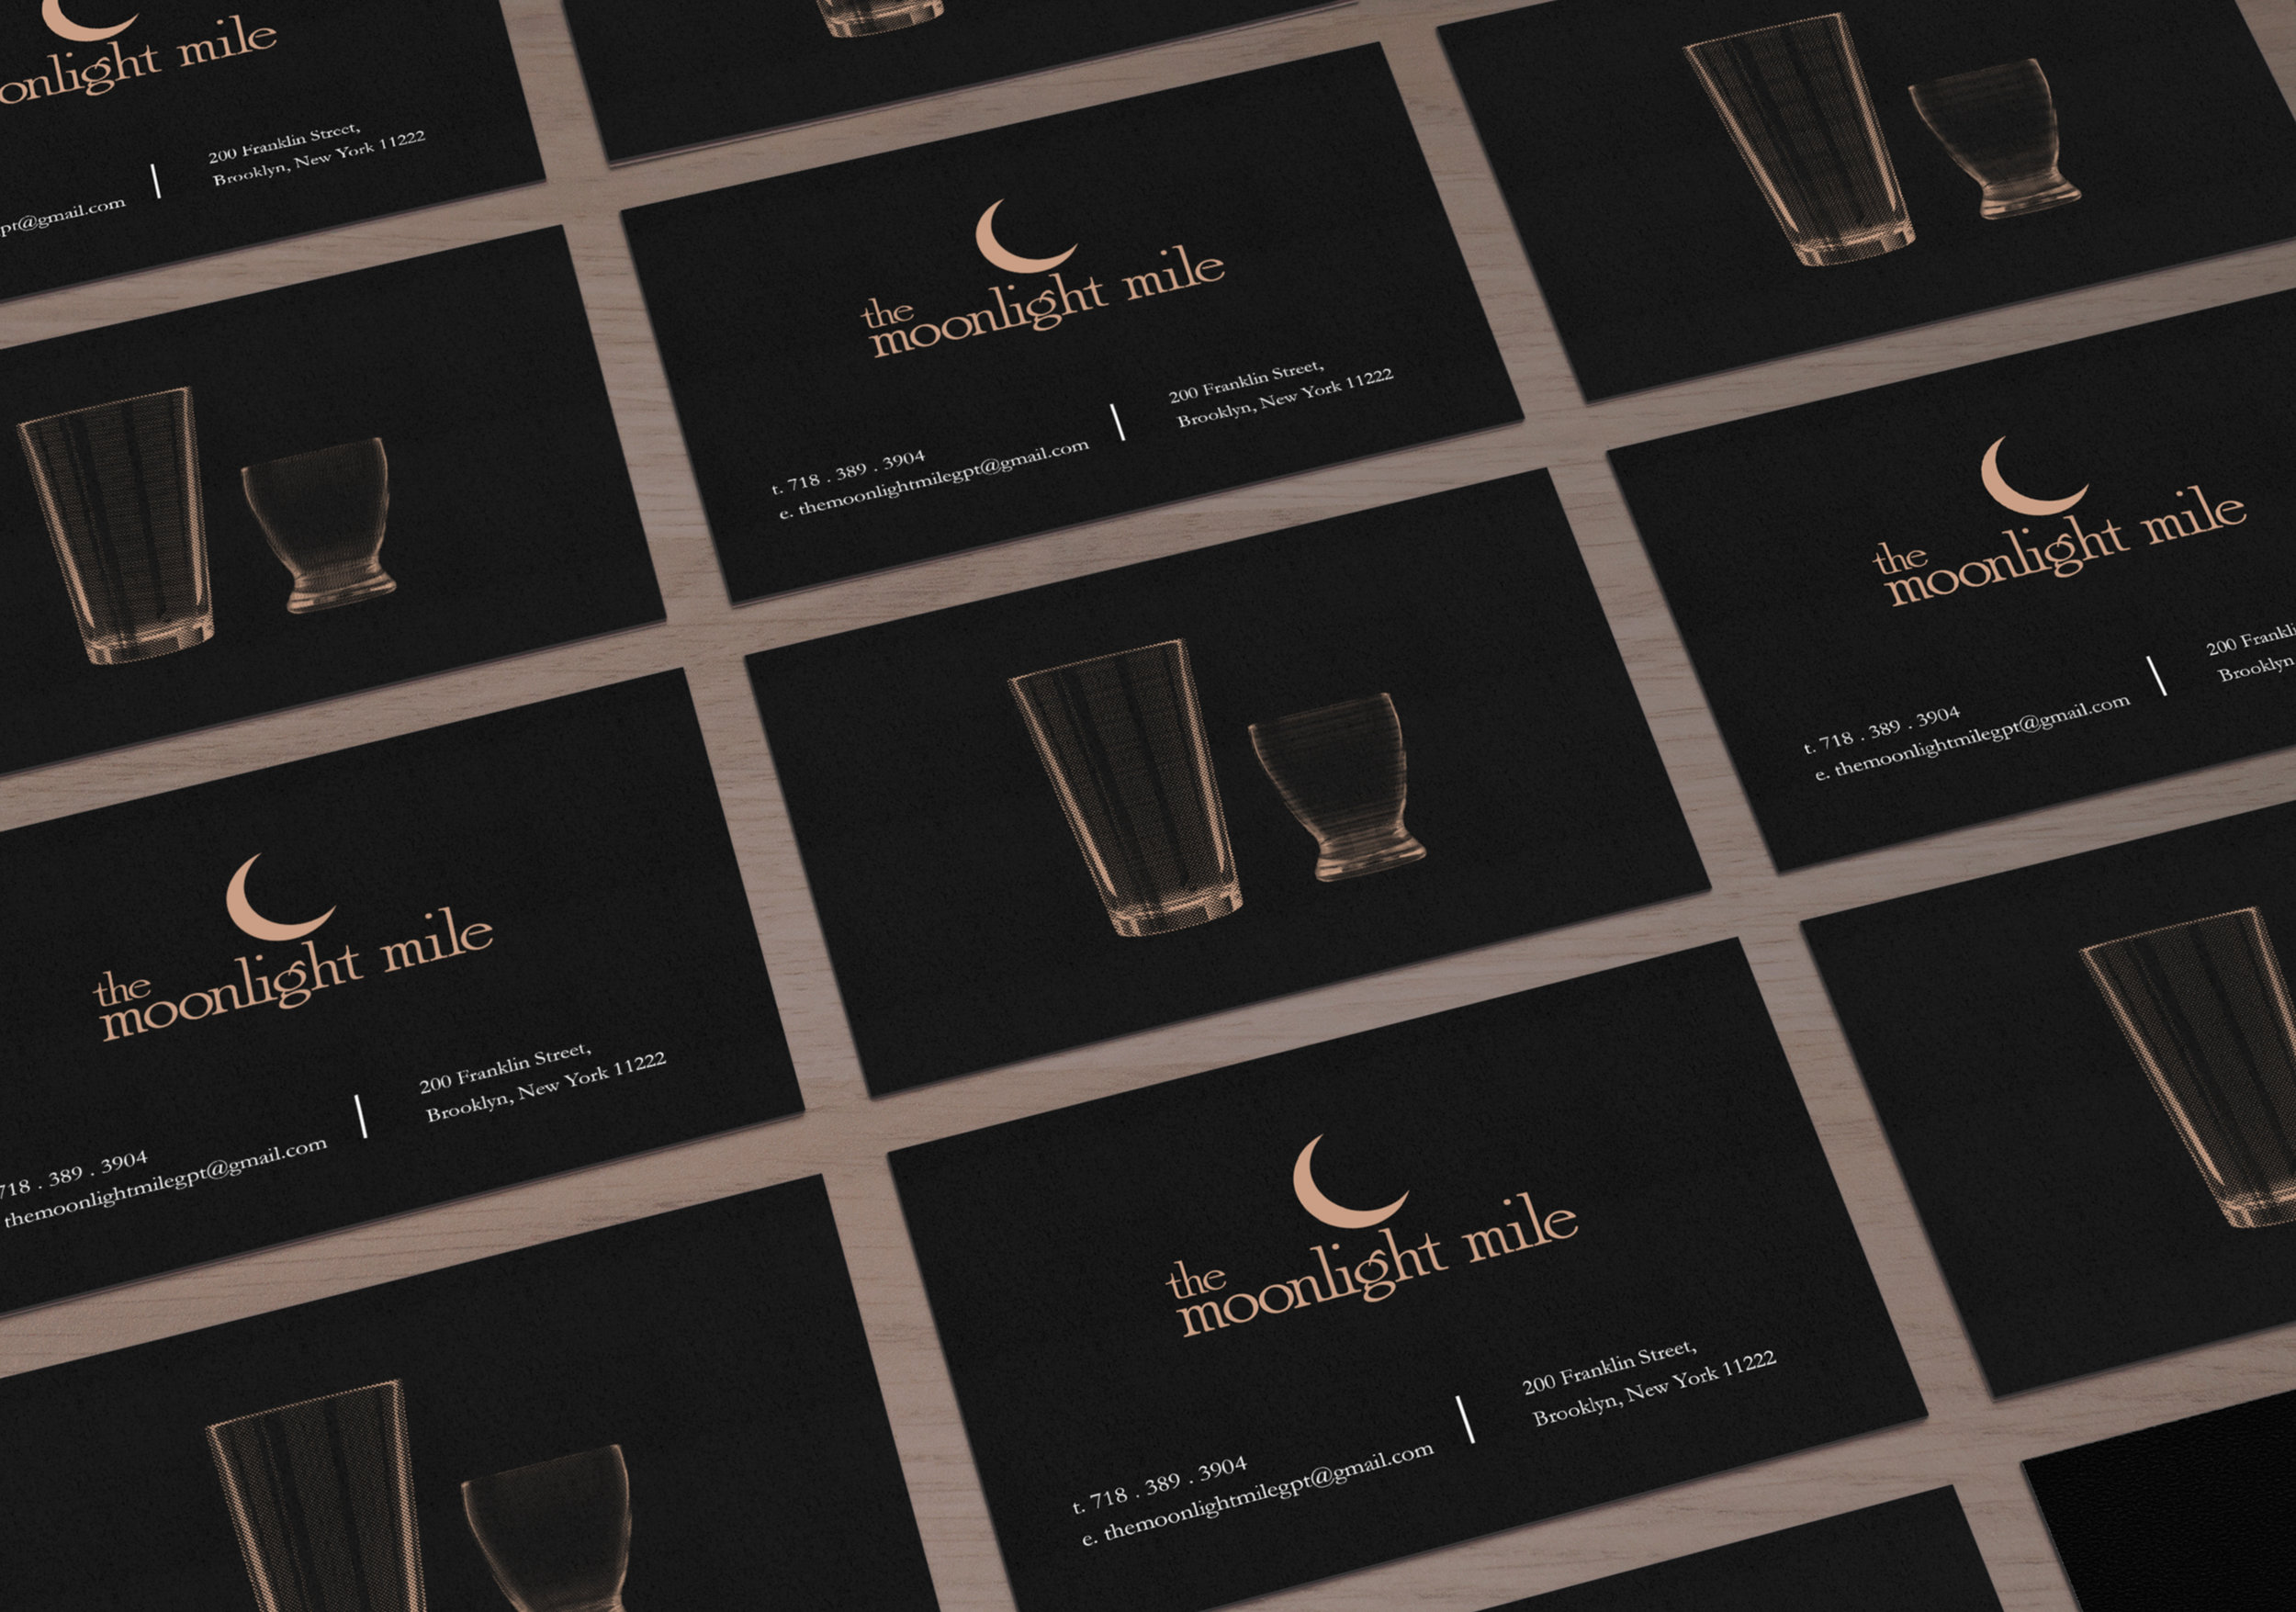 Studio_BLOQ_The_Moonlight_Mile_Greenpoint_Business_Cards.jpg